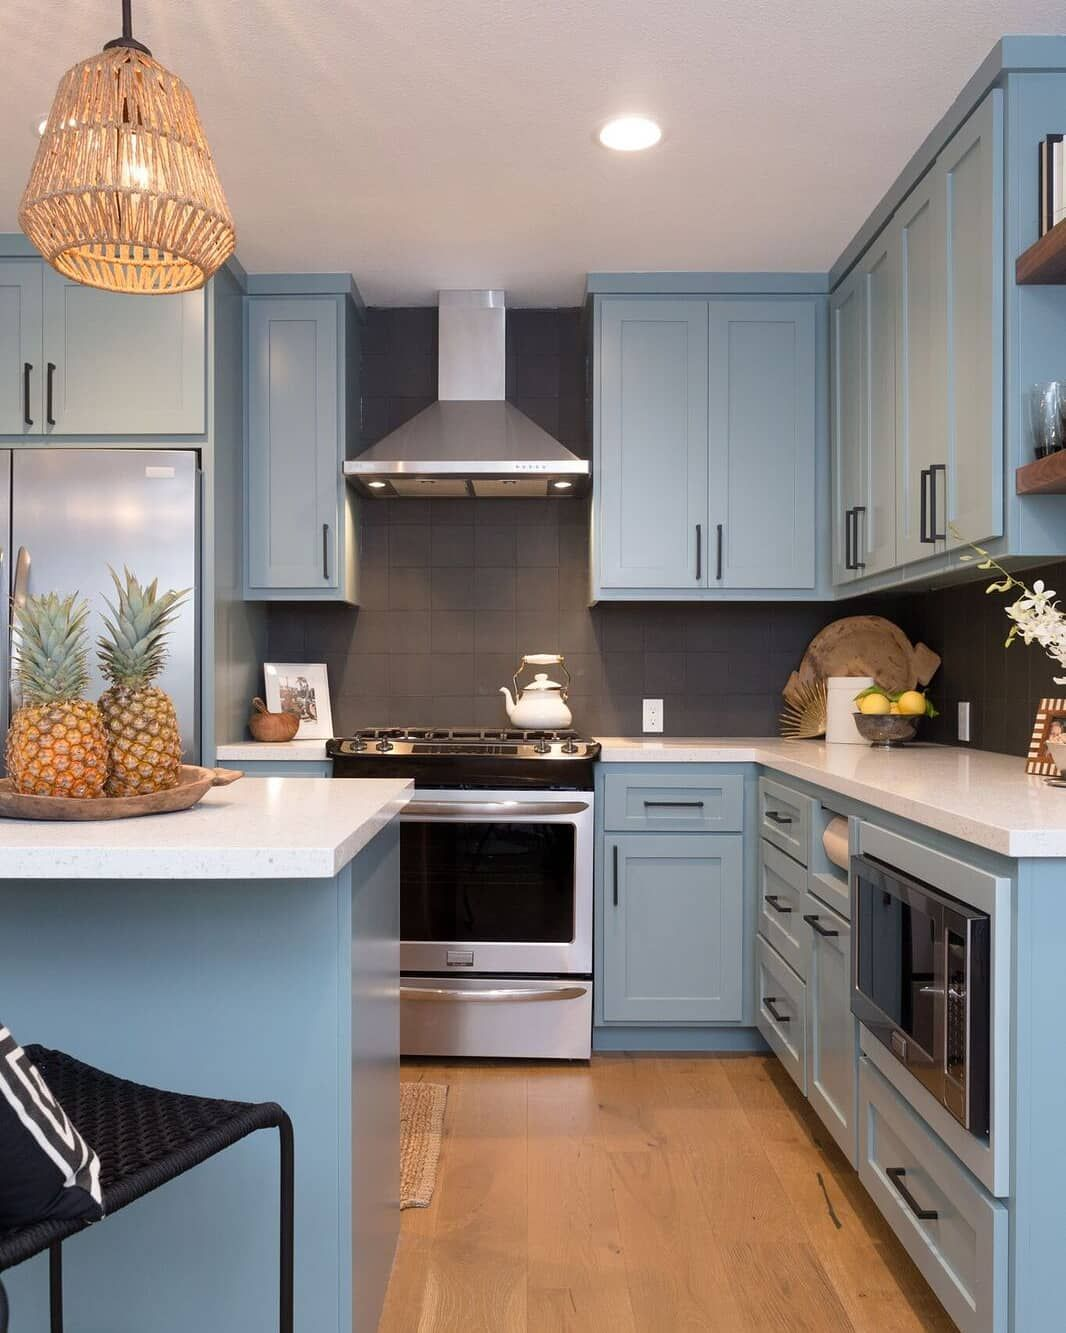 Benjamin Moore On Instagram Builtcustomhomes Used Sea Star 2123 30 On The Cabinets To Transform This Space Into A Bright Coastal Kitchen We Re Sure This De